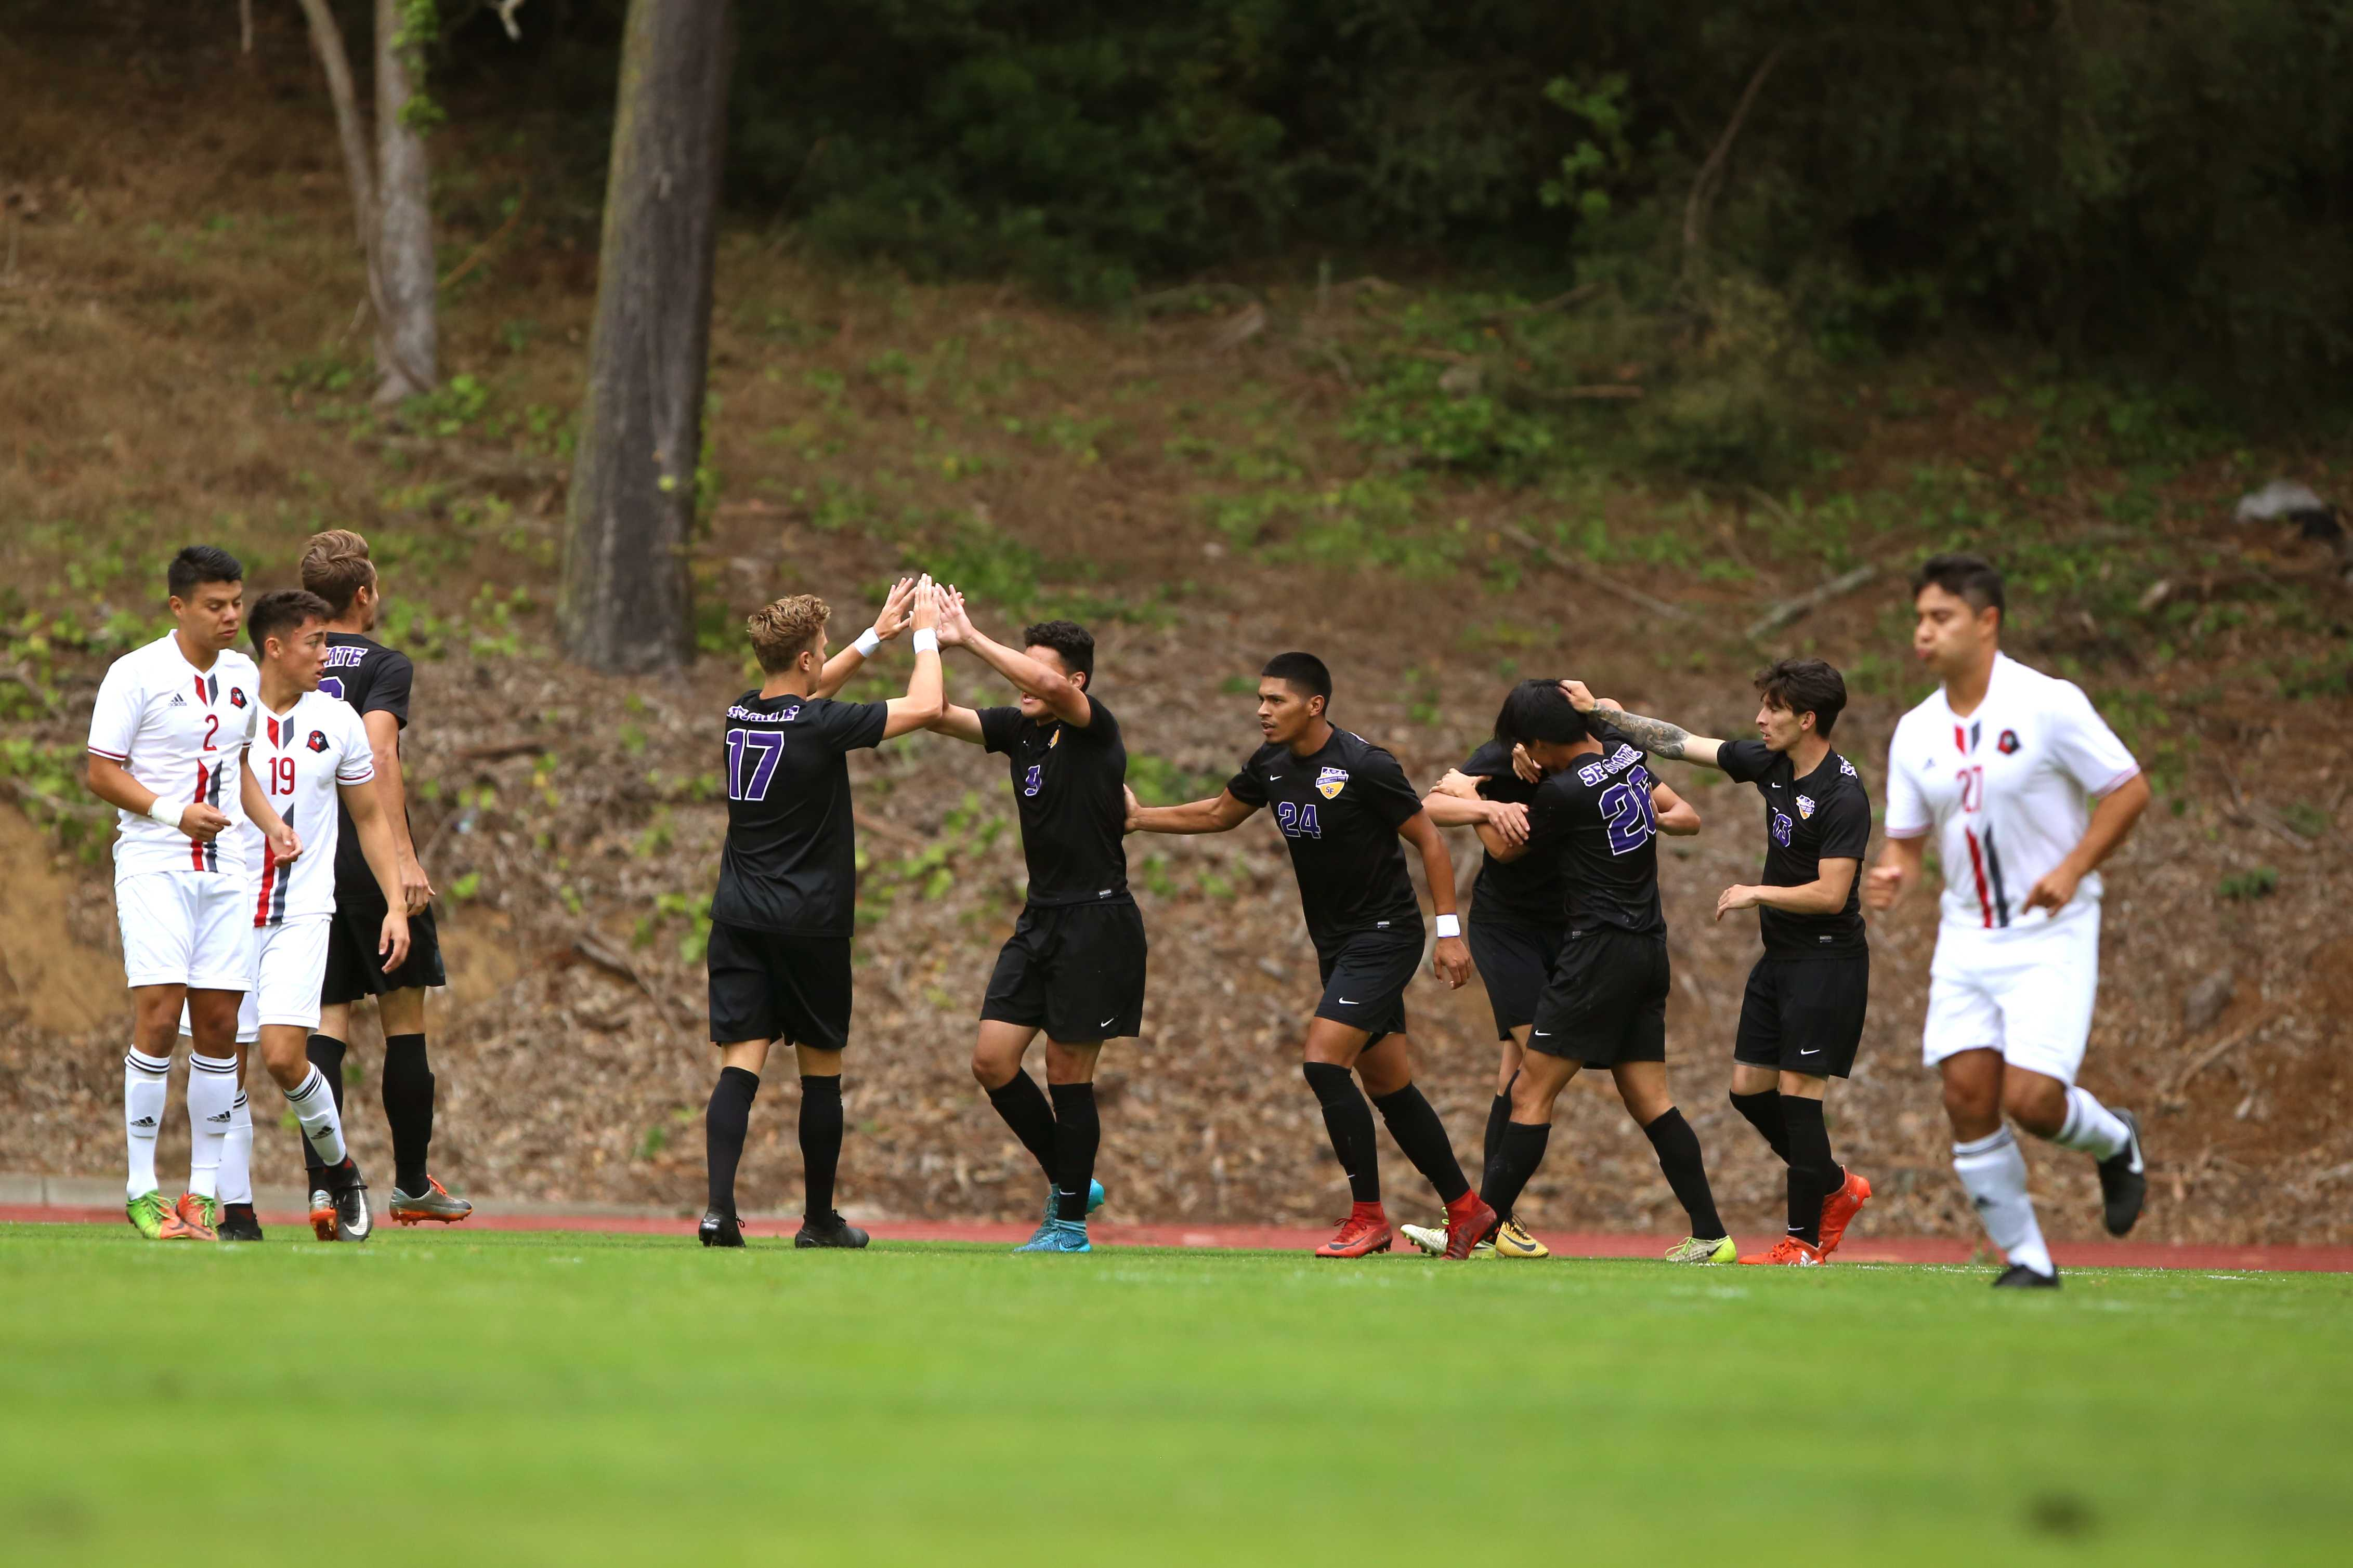 Men's soccer looks to remain undefeated against CSU Bernardino